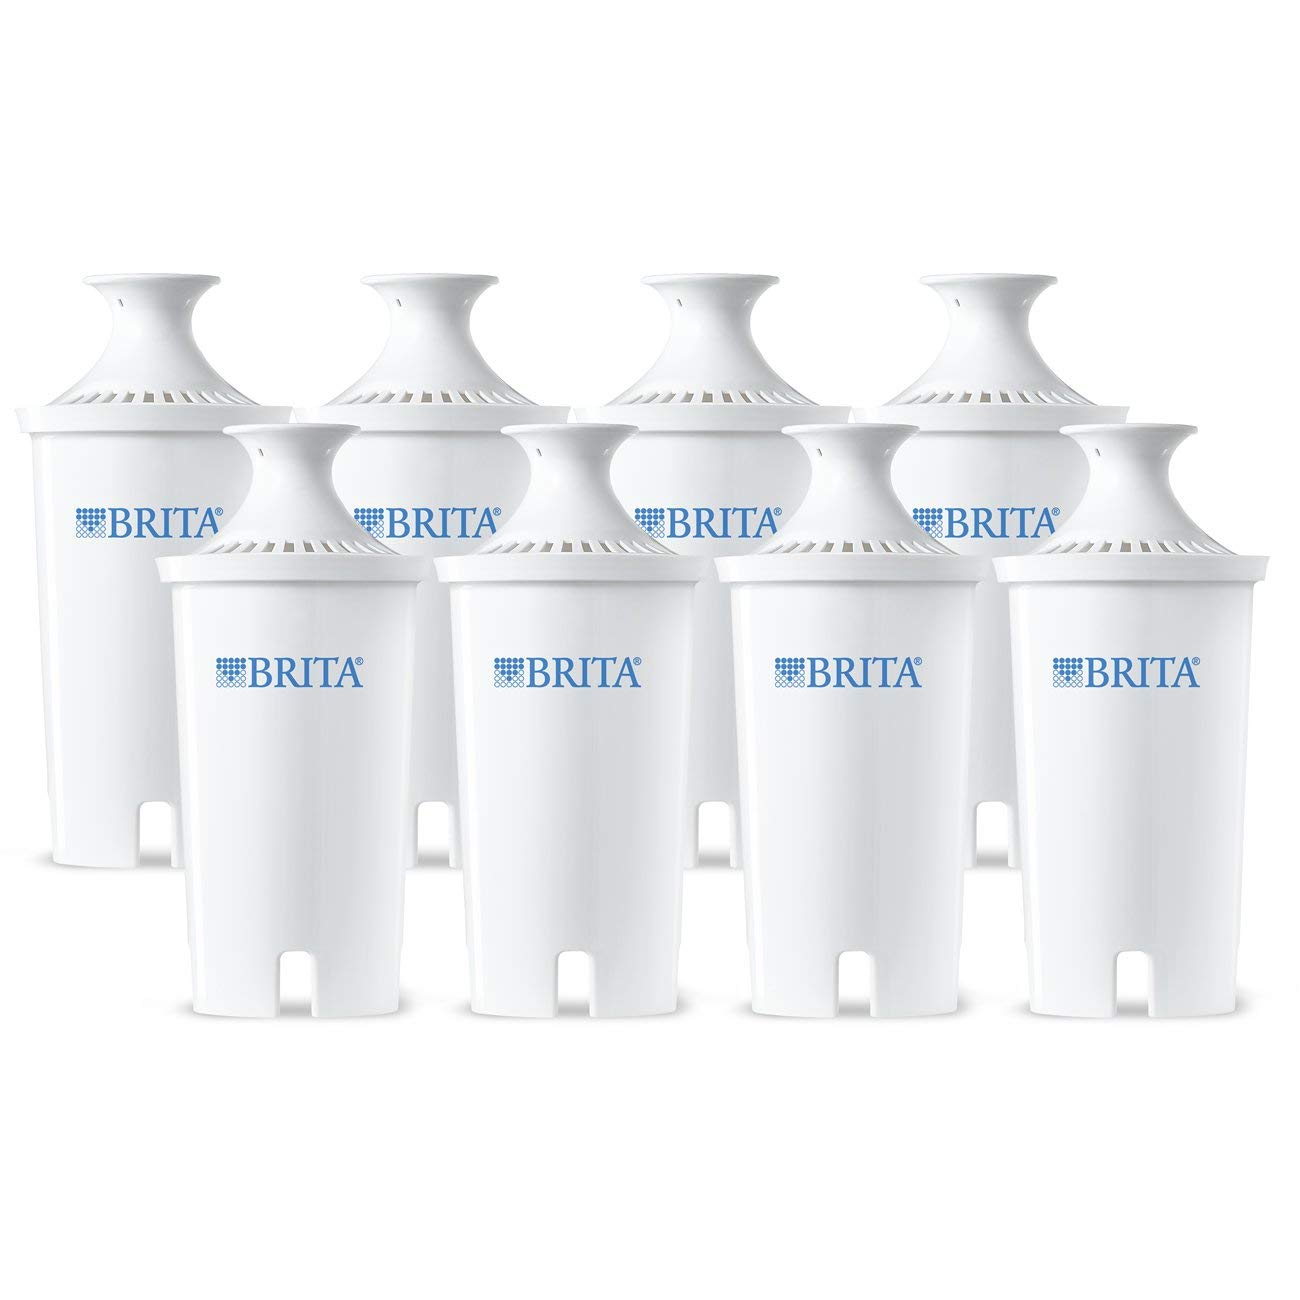 Brita Standard Water Filter, Standard Replacement Filters for Pitchers and Dispensers, BPA Free - 8 Count by Brita